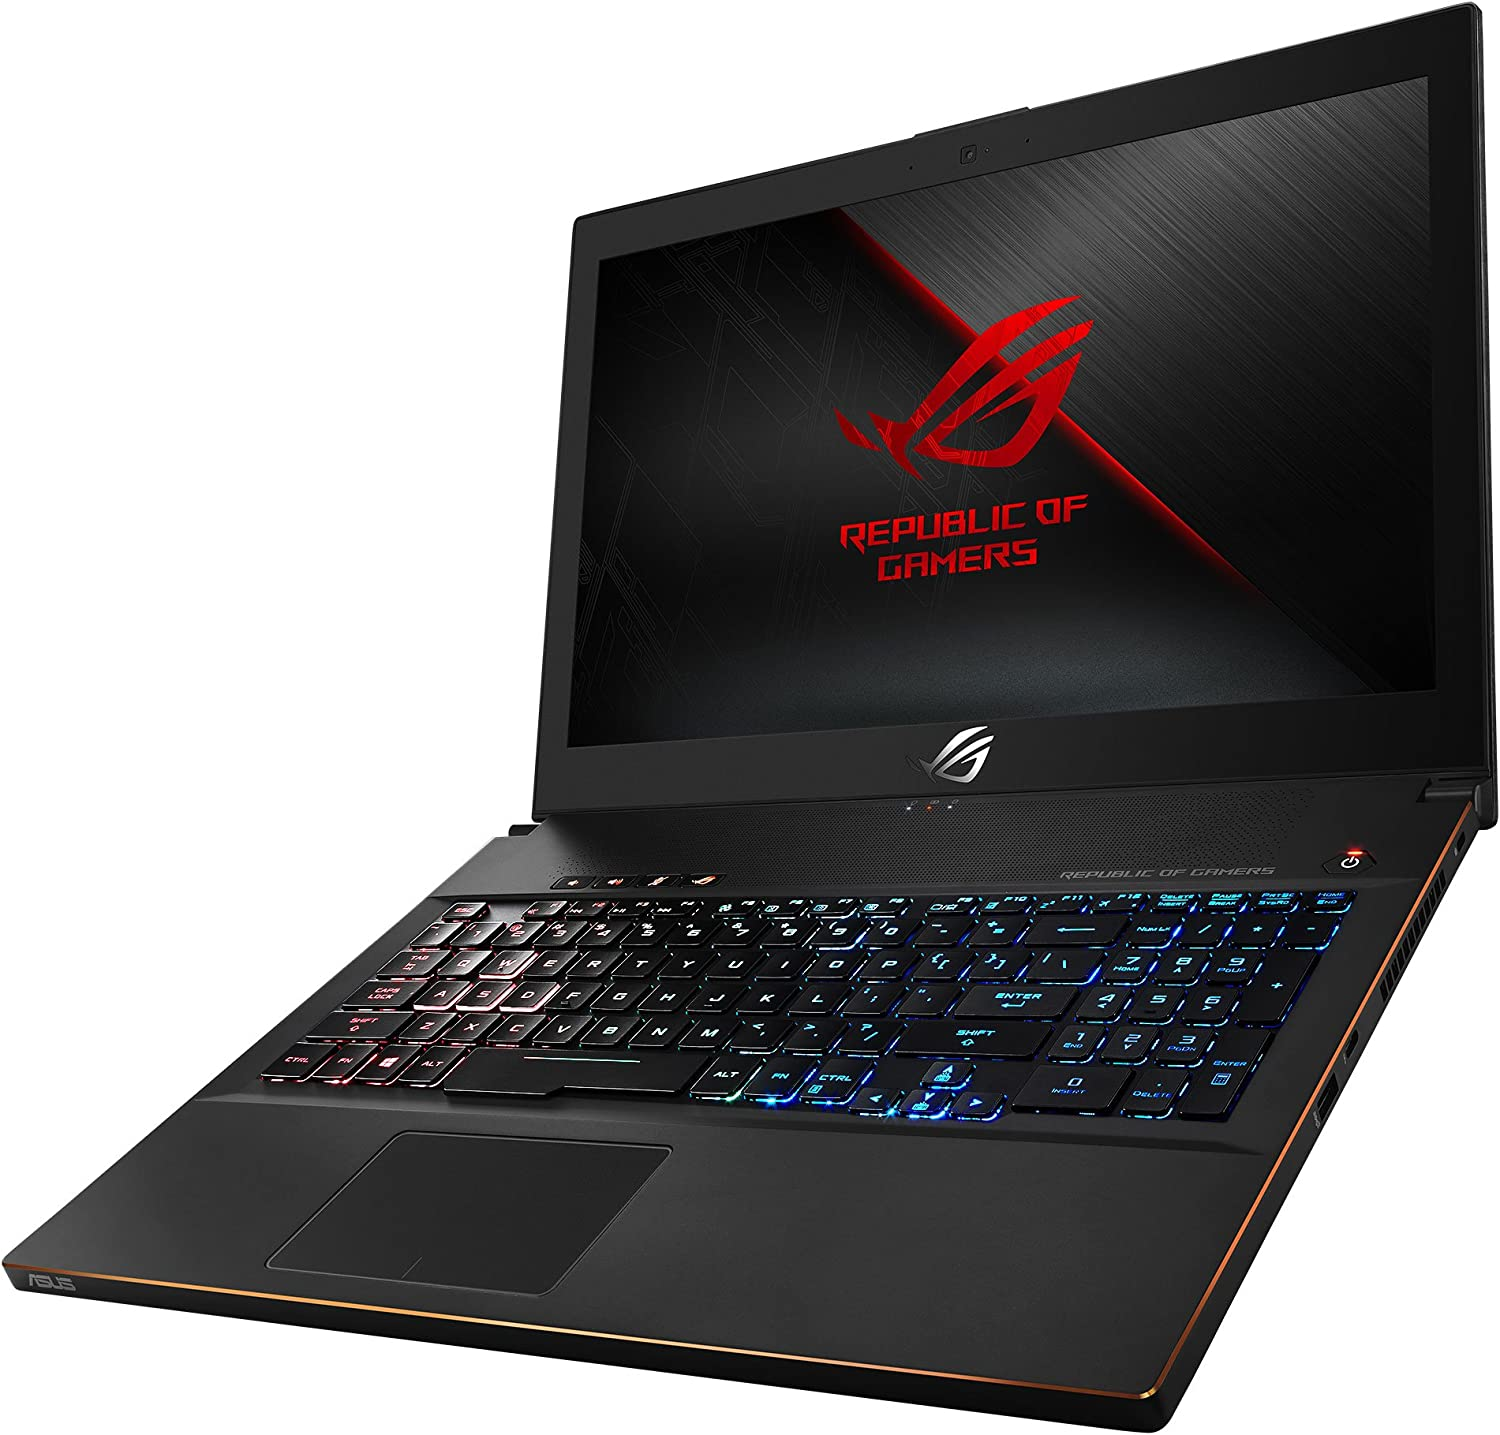 best laptop for programming for students, asus rog zephyrus s gx701,asus rog zephyrus g14,asus rog zephyrus g14 price,asus rog zephyrus gx501,asus rog zephyrus s gx701g,asus rog zephyrus s gx701 price in pakistan,asus rog zephyrus price in pakistan,asus rog zephyrus gx501 price in pakistan,asus rog zephyrus s,asus rog zephyrus amd,asus rog zephyrus amazon,asus rog zephyrus australia,asus rog zephyrus accessories,asus rog zephyrus all models,asus rog zephyrus amd ryzen 9,asus rog zephyrus amd 4000,asus rog zephyrus advice,a-asus rog zephyrus gx501,the asus rog zephyrus g14,the asus rog zephyrus s gx701,the asus rog zephyrus s,the asus rog zephyrus g,the asus rog zephyrus s gx502,the asus rog zephyrus m gm501,asus rog zephyrus best buy,asus rog zephyrus battery life,asus rog zephyrus buy,asus rog zephyrus bios,asus rog zephyrus battery,asus rog zephyrus blue,asus rog zephyrus benchmark,asus rog zephyrus black screen,asus rog zephyrus s gx502gv-b-0051b9750h,asus rog zephyrus charger,asus rog zephyrus case,asus rog zephyrus canada,asus rog zephyrus camera,asus rog zephyrus ces 2020,asus rog zephyrus cena,asus rog zephyrus currys,asus rog zephyrus core i9,asus rog zephyrus usb c charging,asus rog zephyrus duo 15,asus rog zephyrus duo 15 price,asus rog zephyrus duo 15 price in pakistan,asus rog zephyrus duo 15 release date,asus rog zephyrus drivers,asus rog zephyrus duo 15 dual-screen,